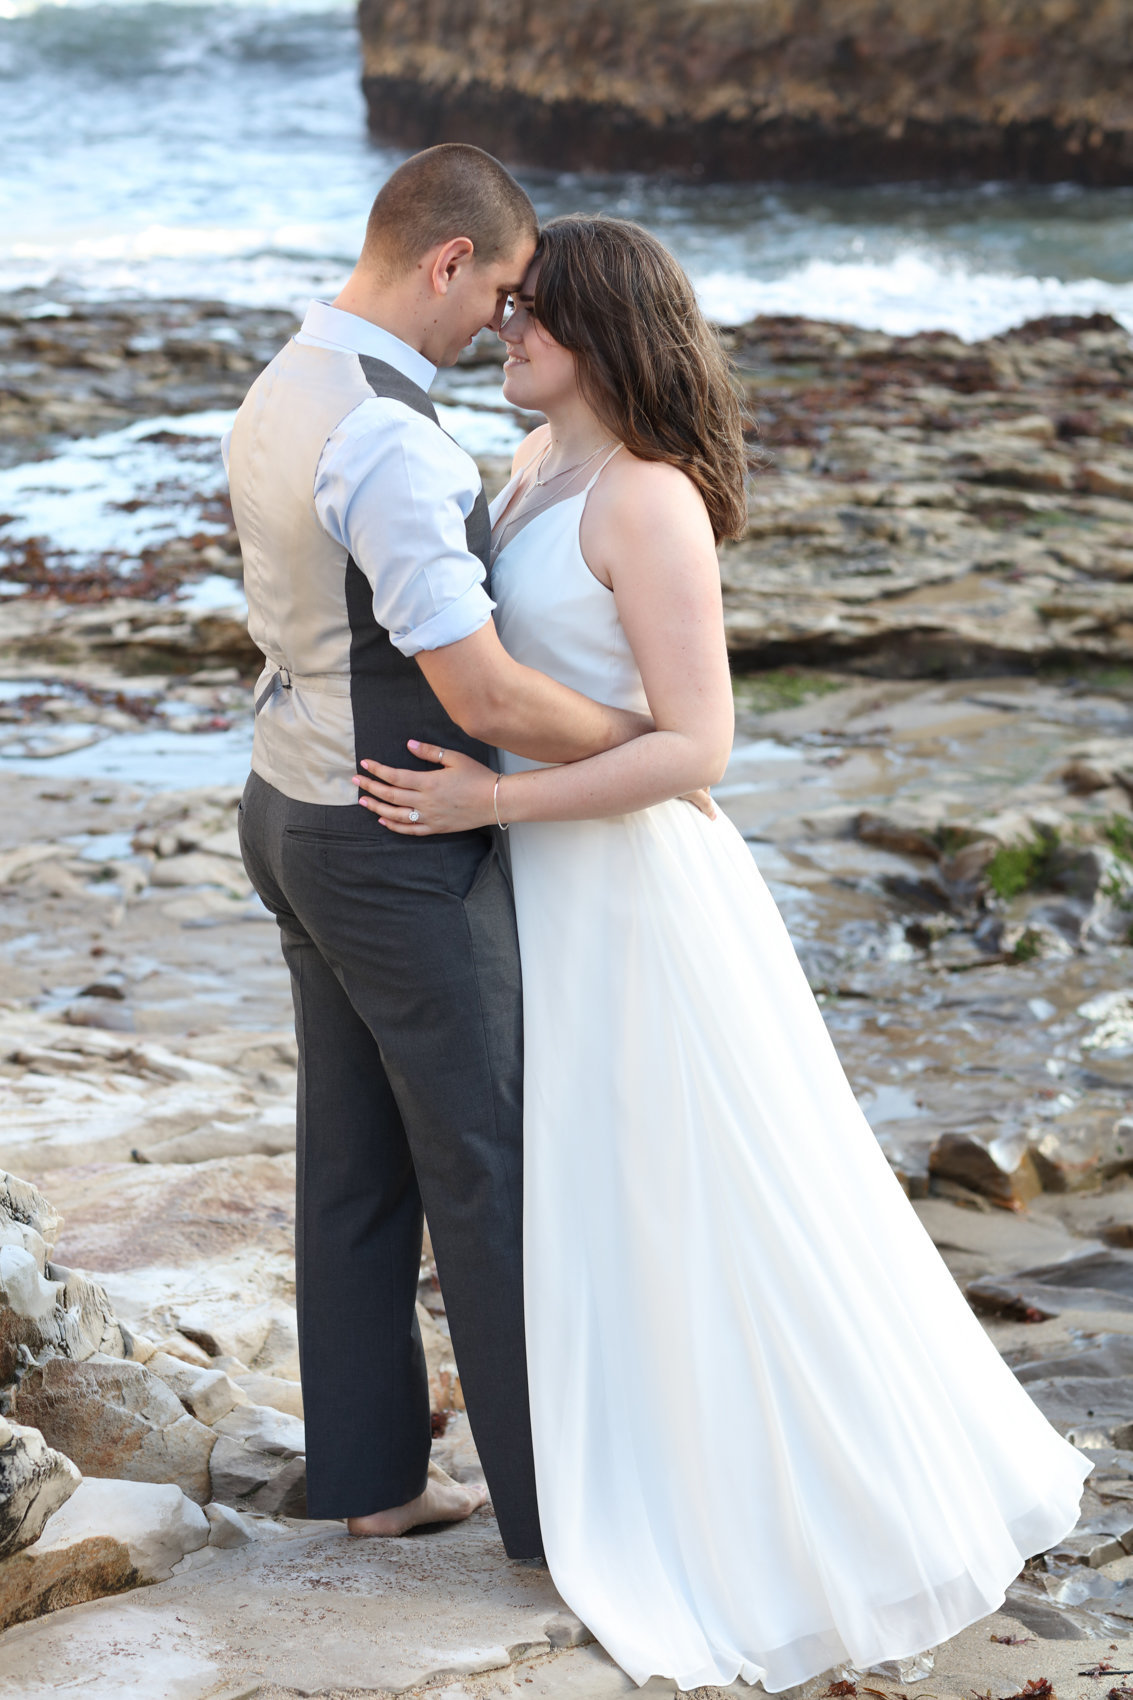 Portrait of bride and groom on beach, outdoor engagement photoshoot